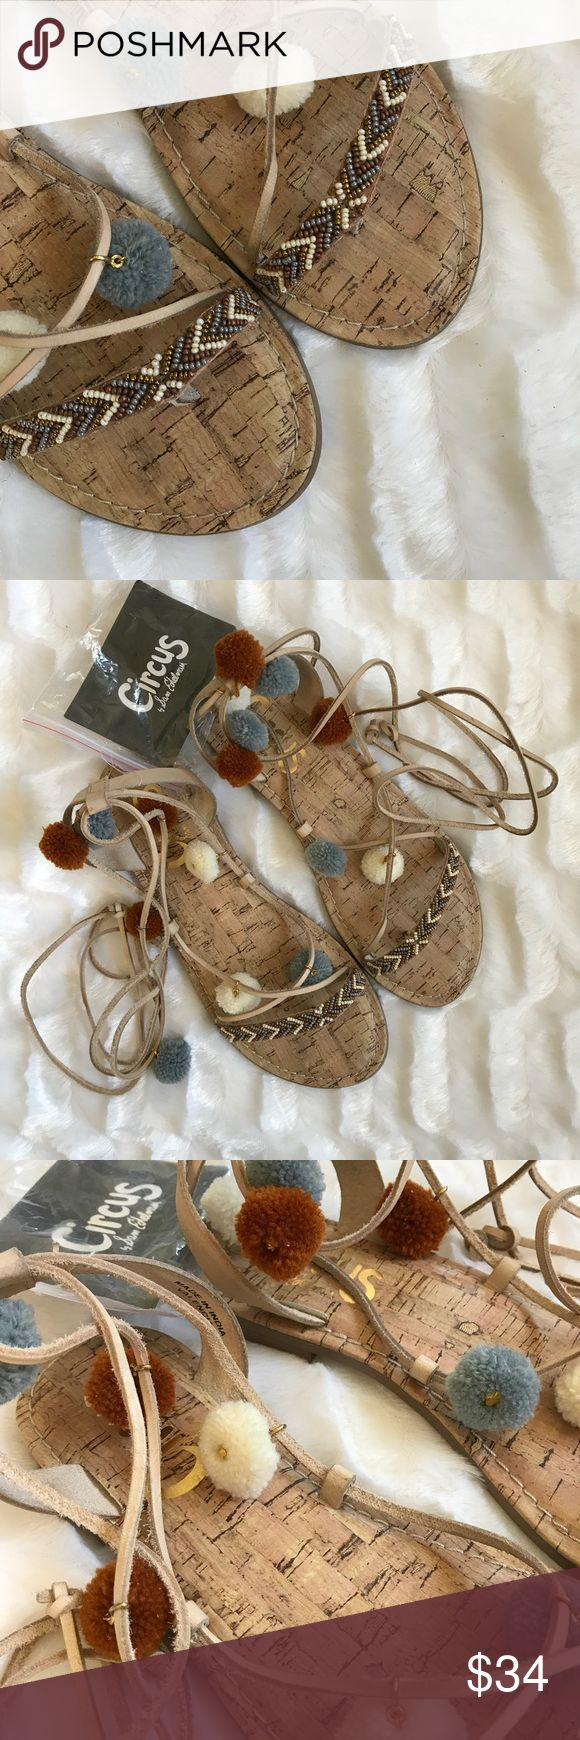 💎New Item💎 Valencia Sandals Strappy sandals with beaded toe strap and cute little pom-poms along the ankle lace ups. Valencia - circus by Sam Edelman. NIB. Comes with extra pom-poms. Circus by Sam Edelman Shoes Sandals